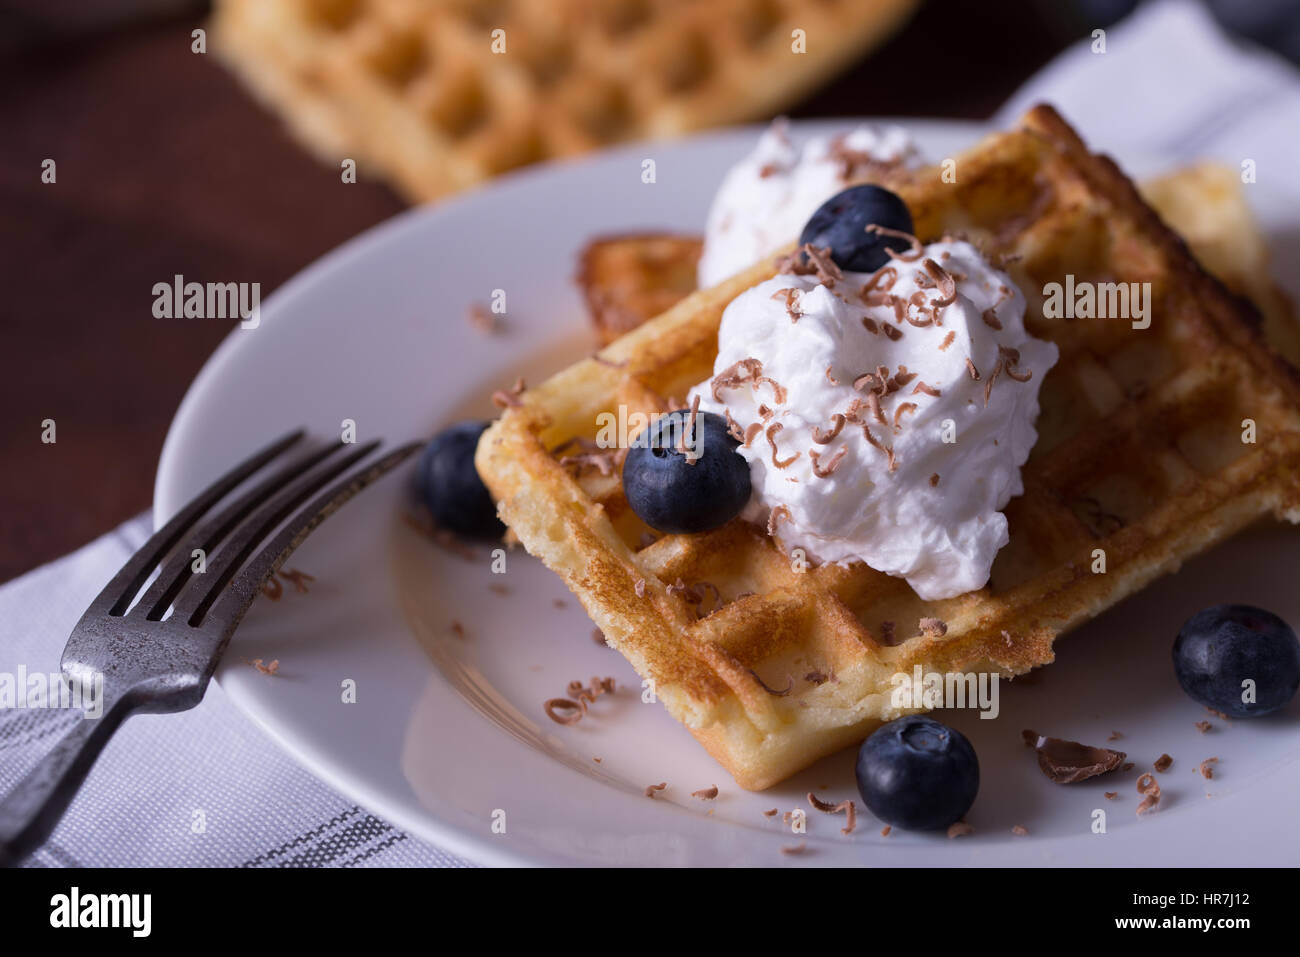 Belgian waffles on white plate, napkin and rustic background. - Stock Image